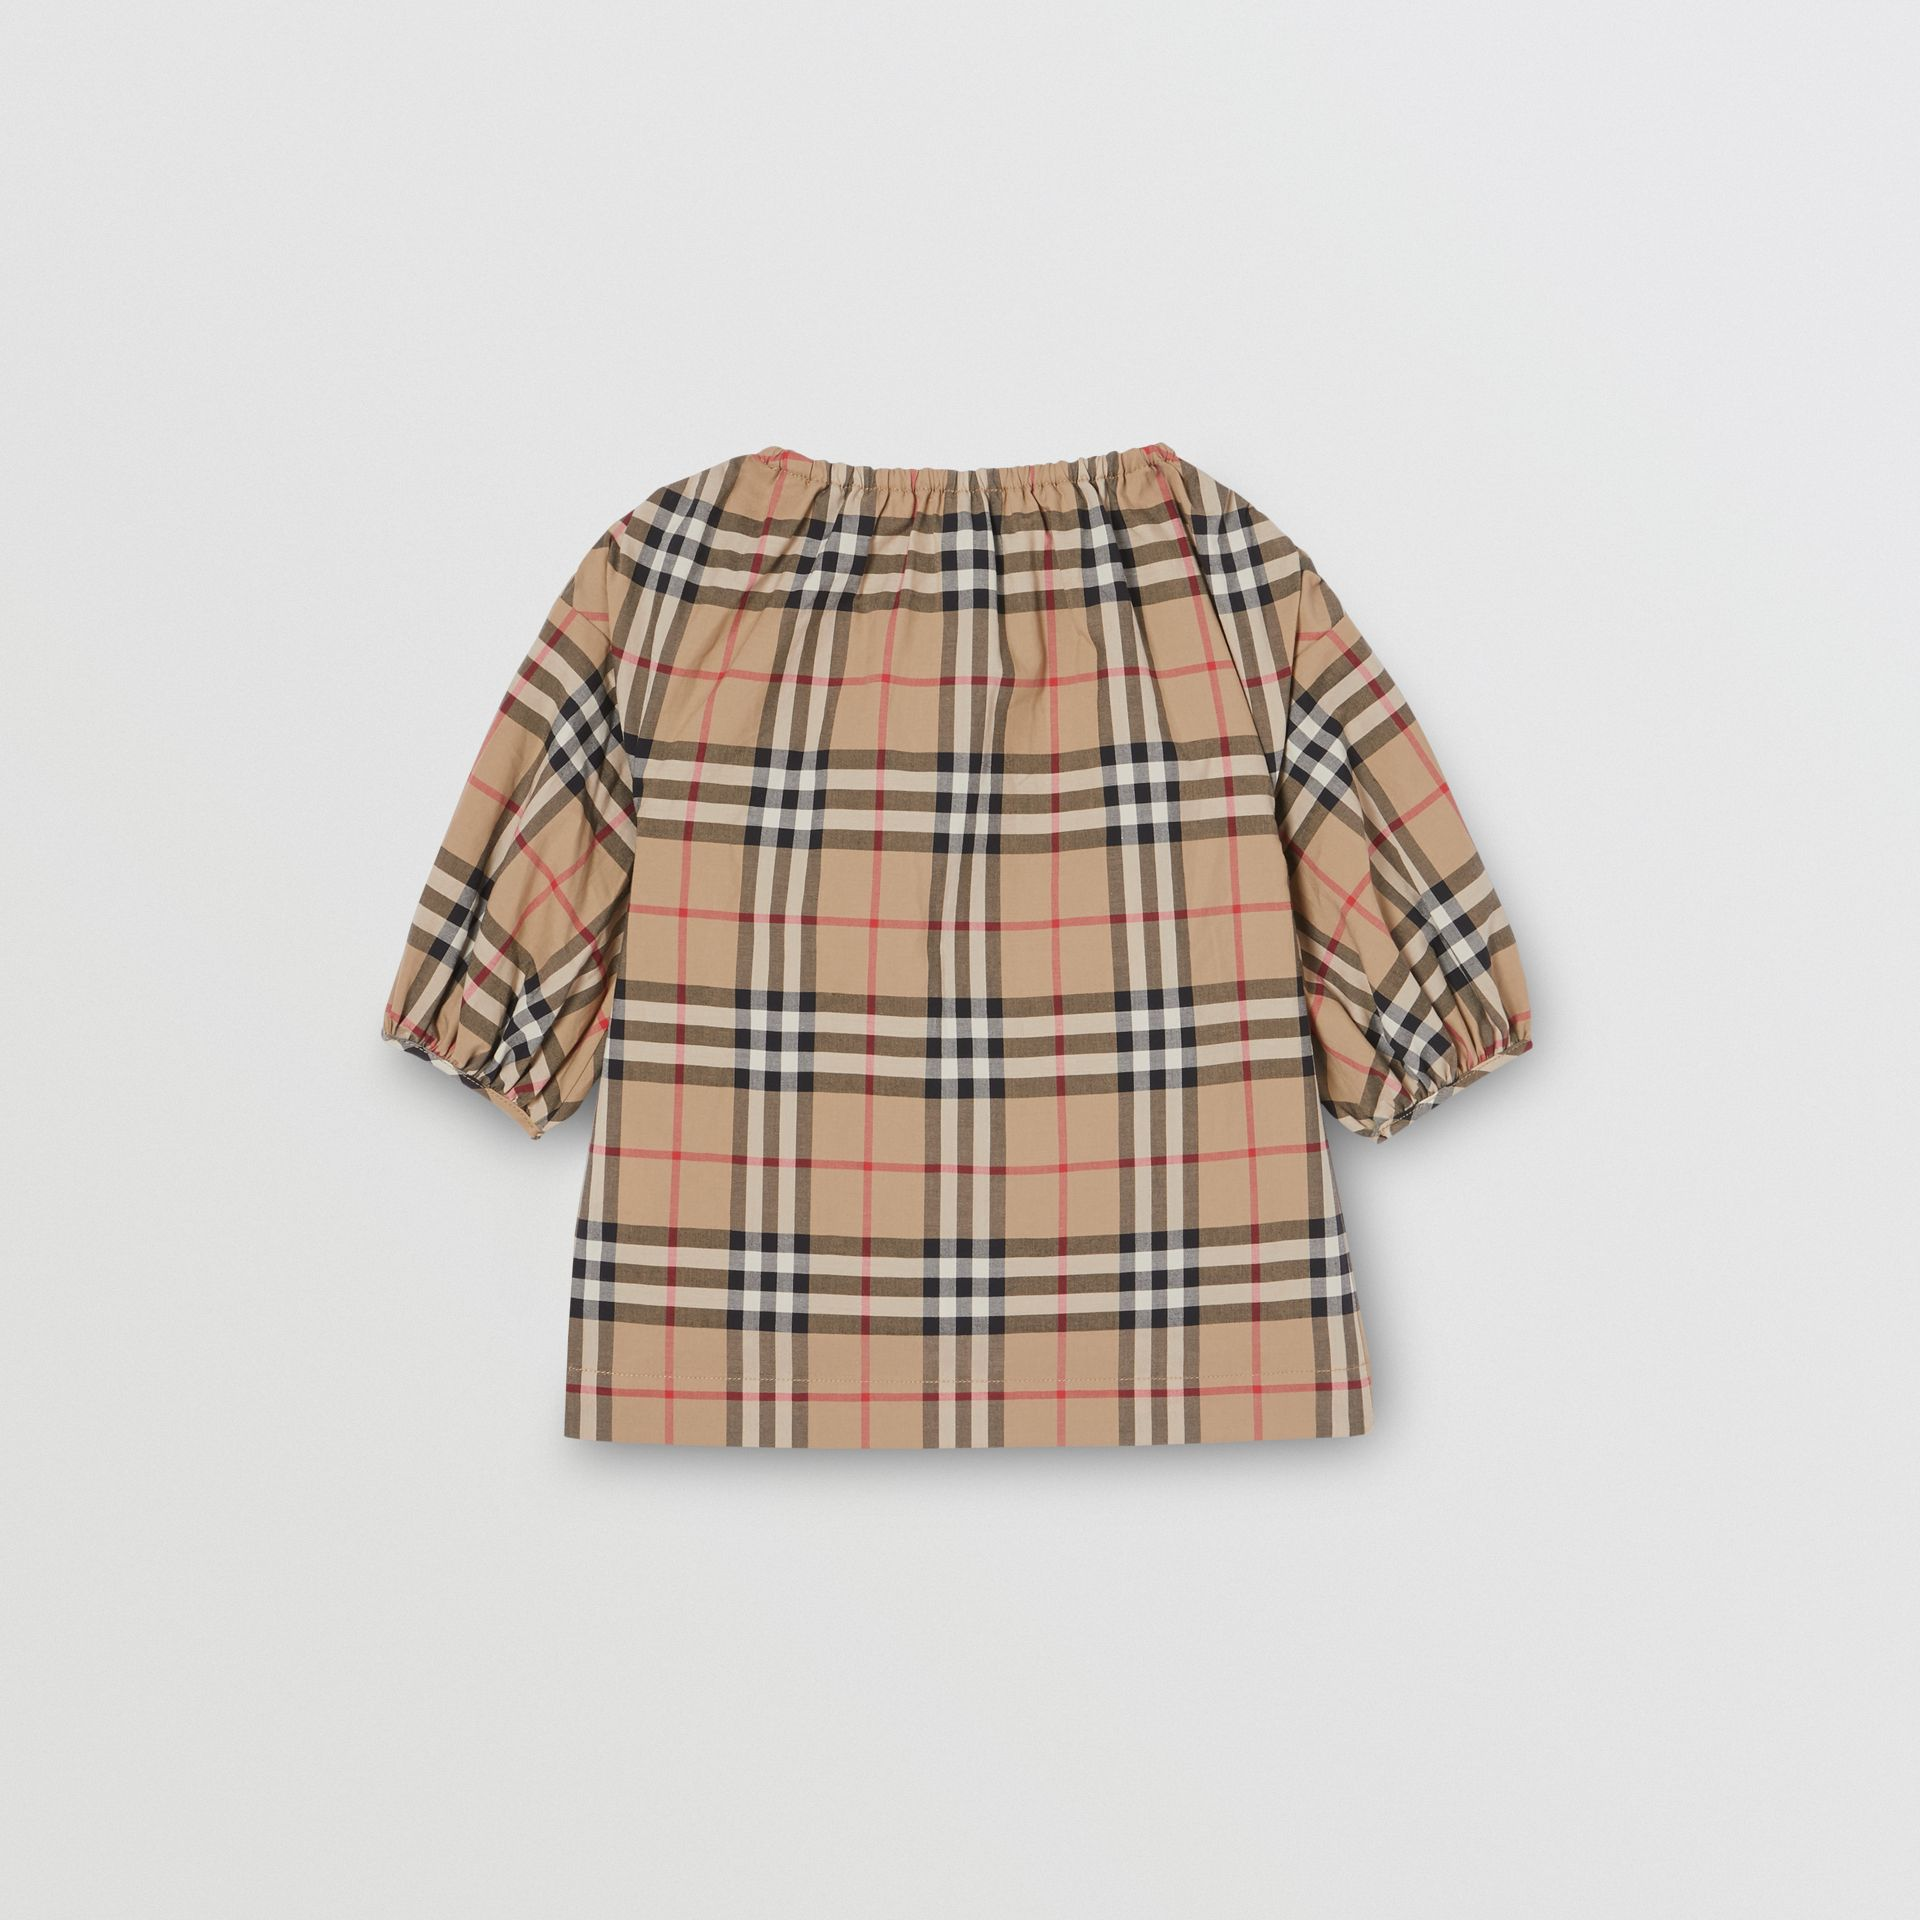 Gathered Sleeve Vintage Check Cotton Dress in Archive Beige - Children | Burberry Canada - gallery image 3